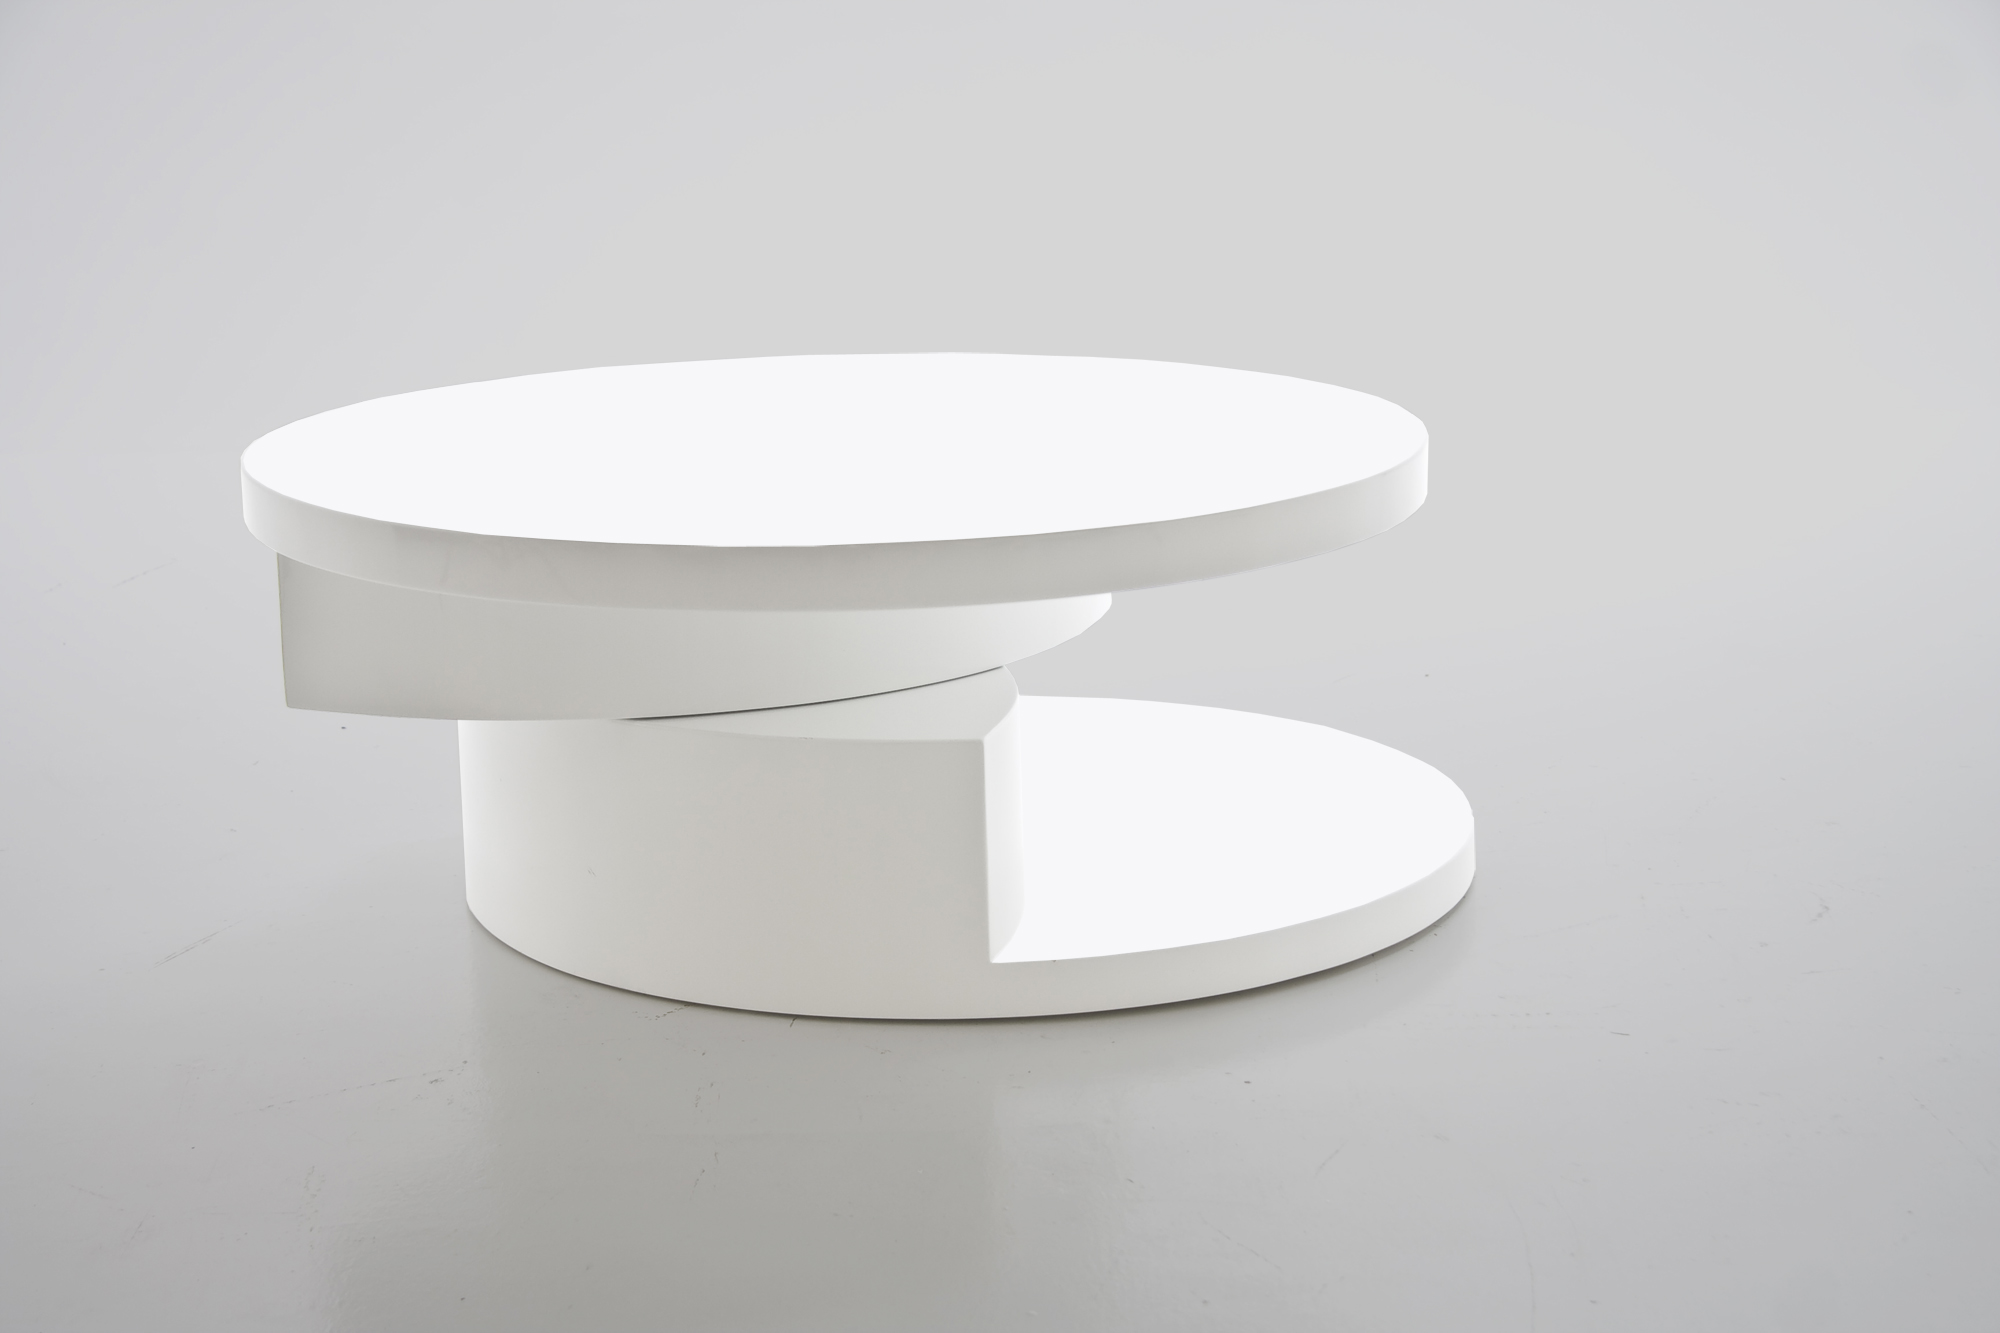 Some Round Coffee Tables Can Have An Unusual Form And Shape Unique Elegant White